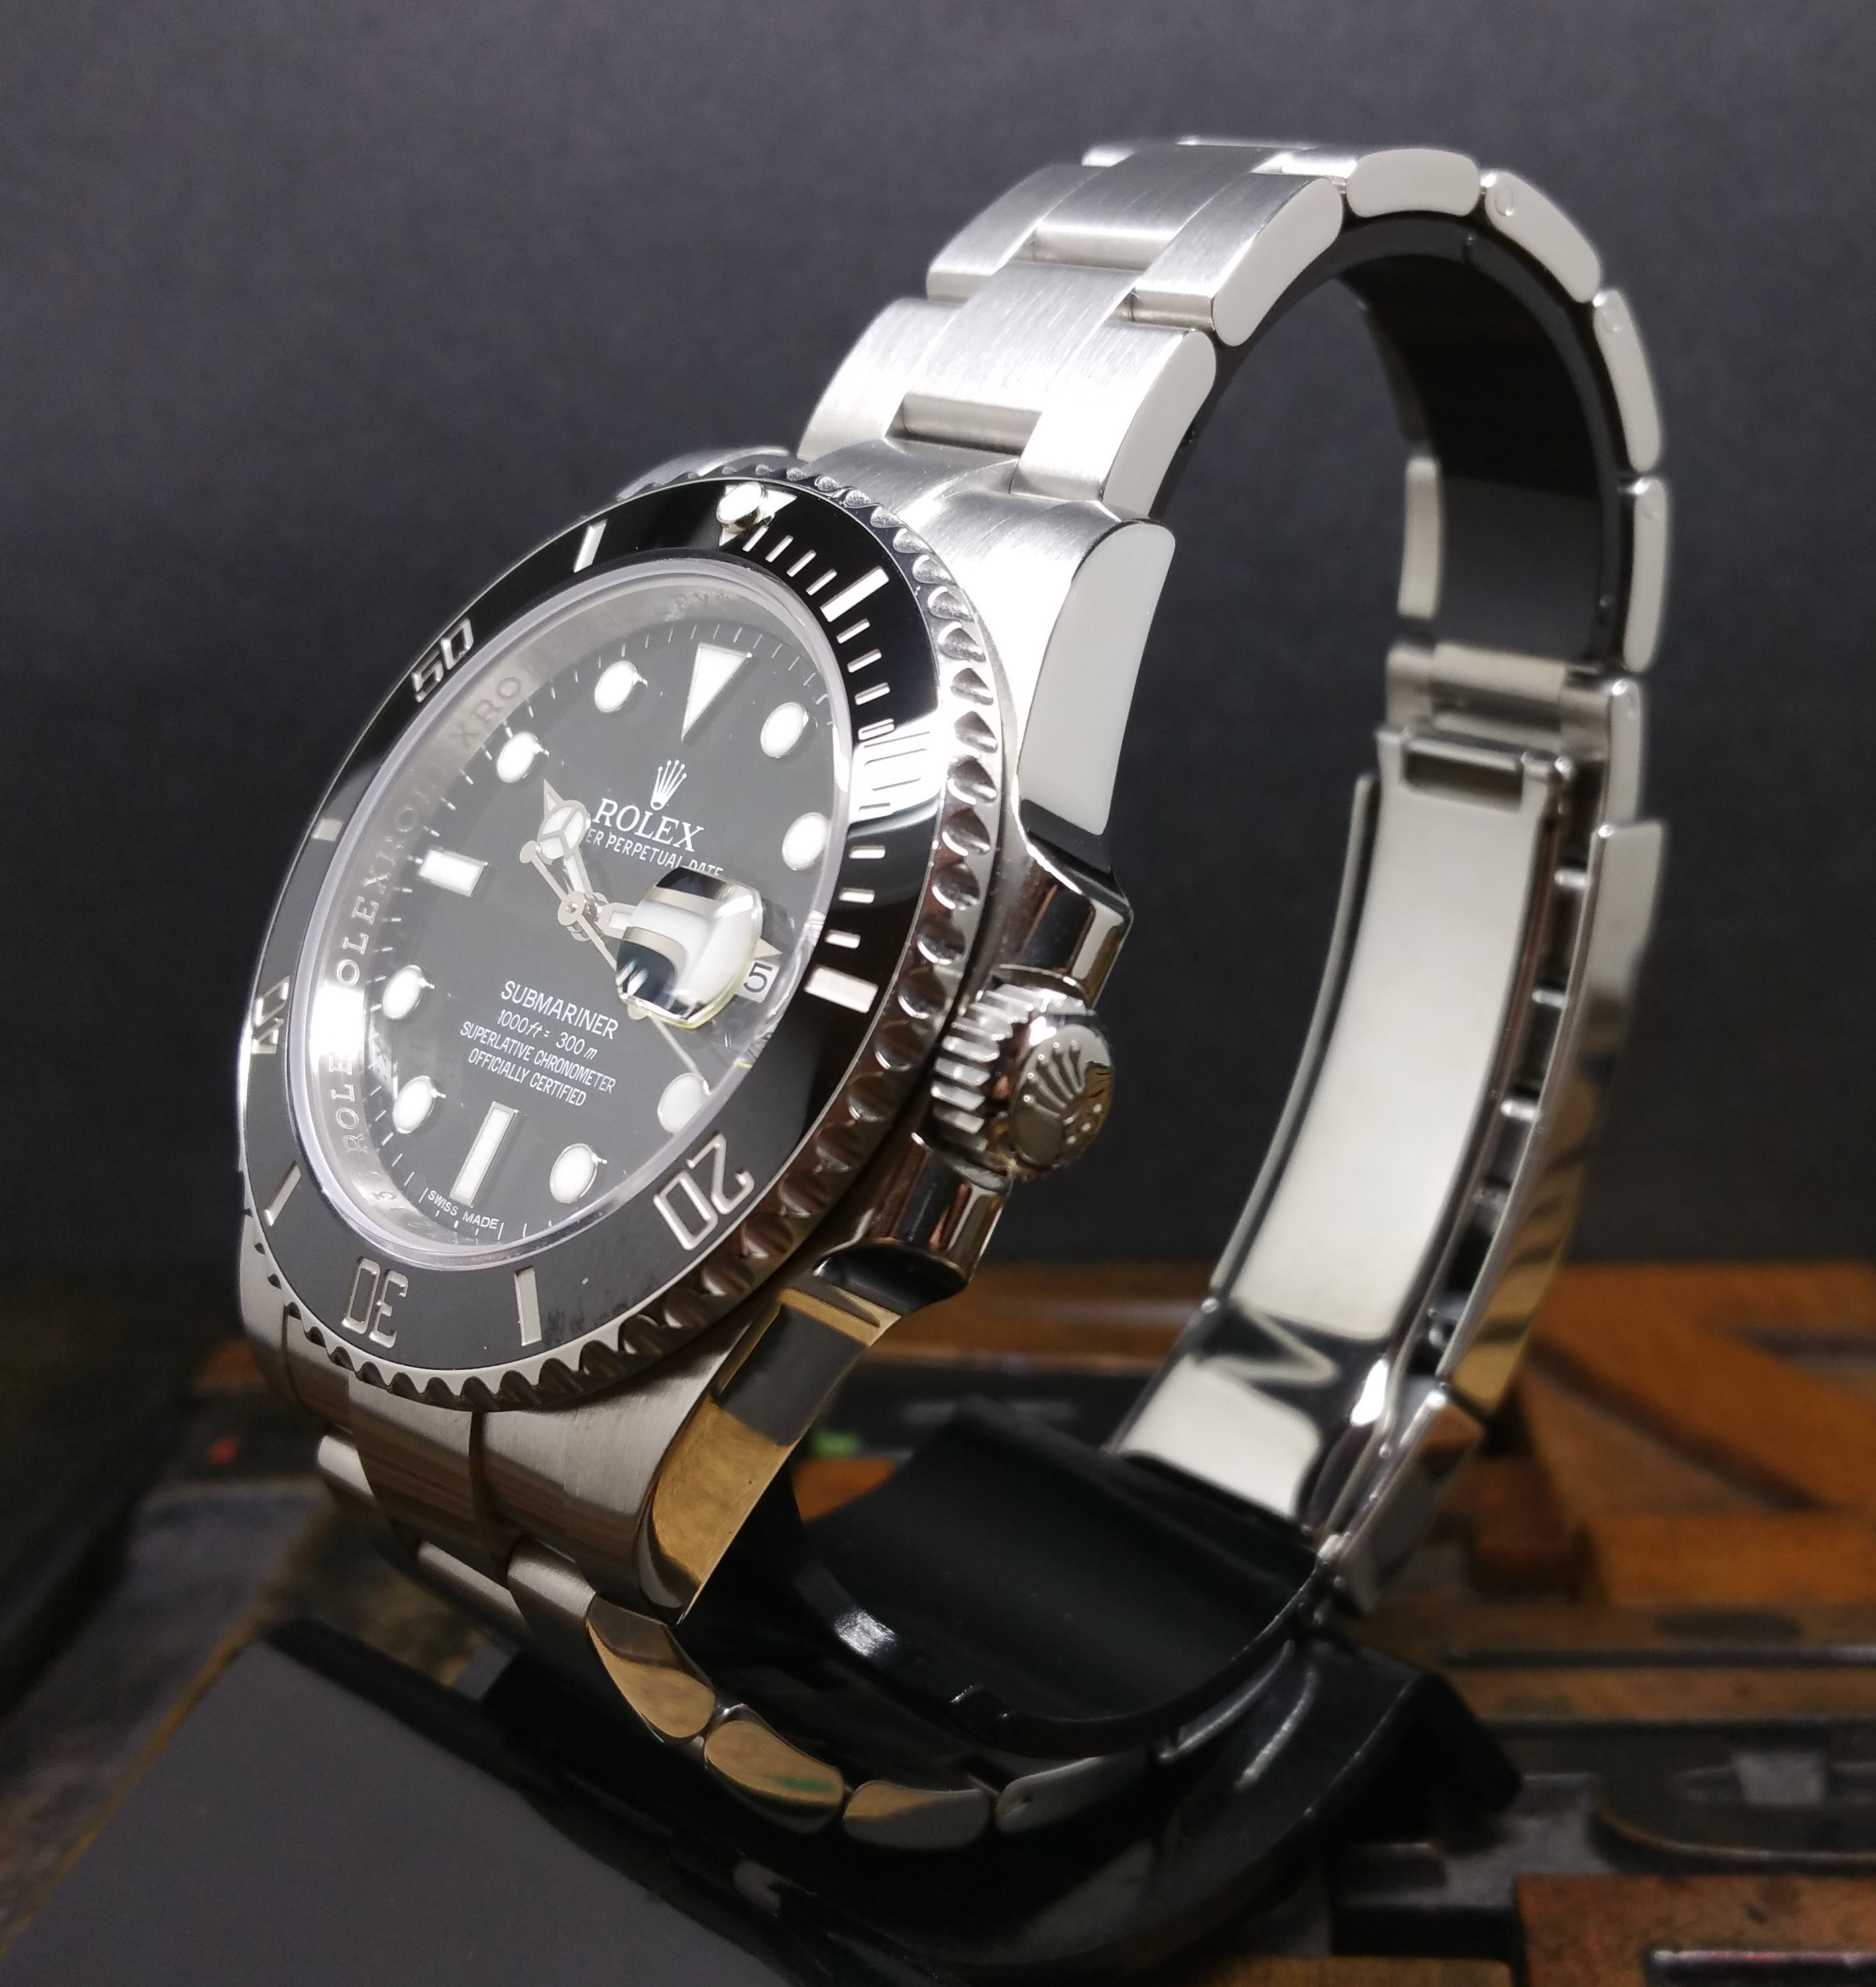 2015 Rolex Submariner Date 116610LN Ceramic Bezel with Box and Papers